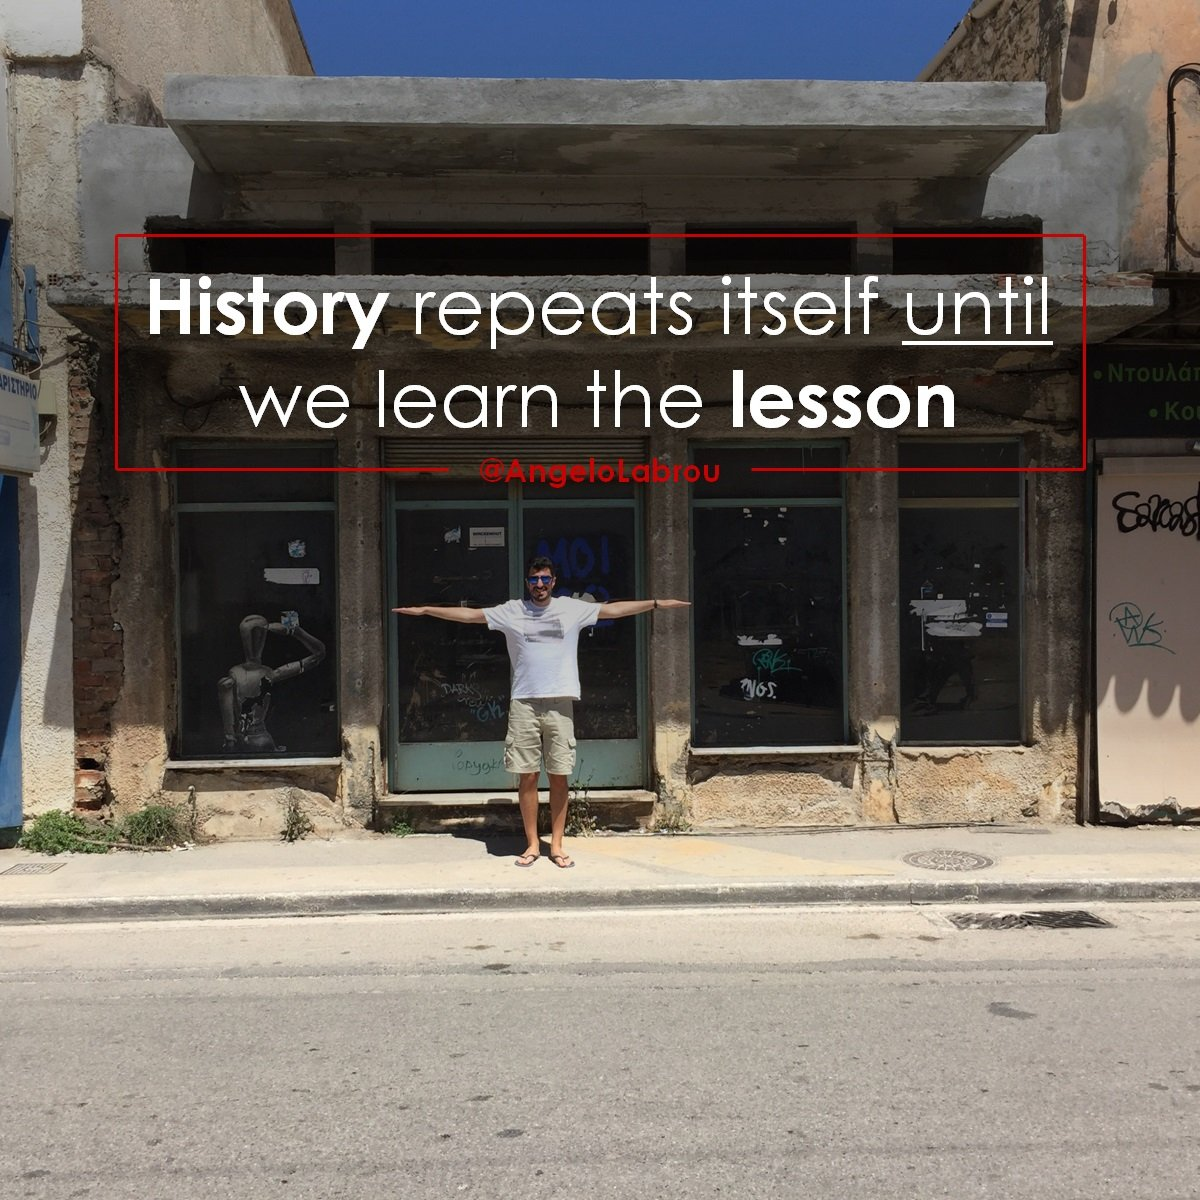 History repeats itself until we learn the lesson